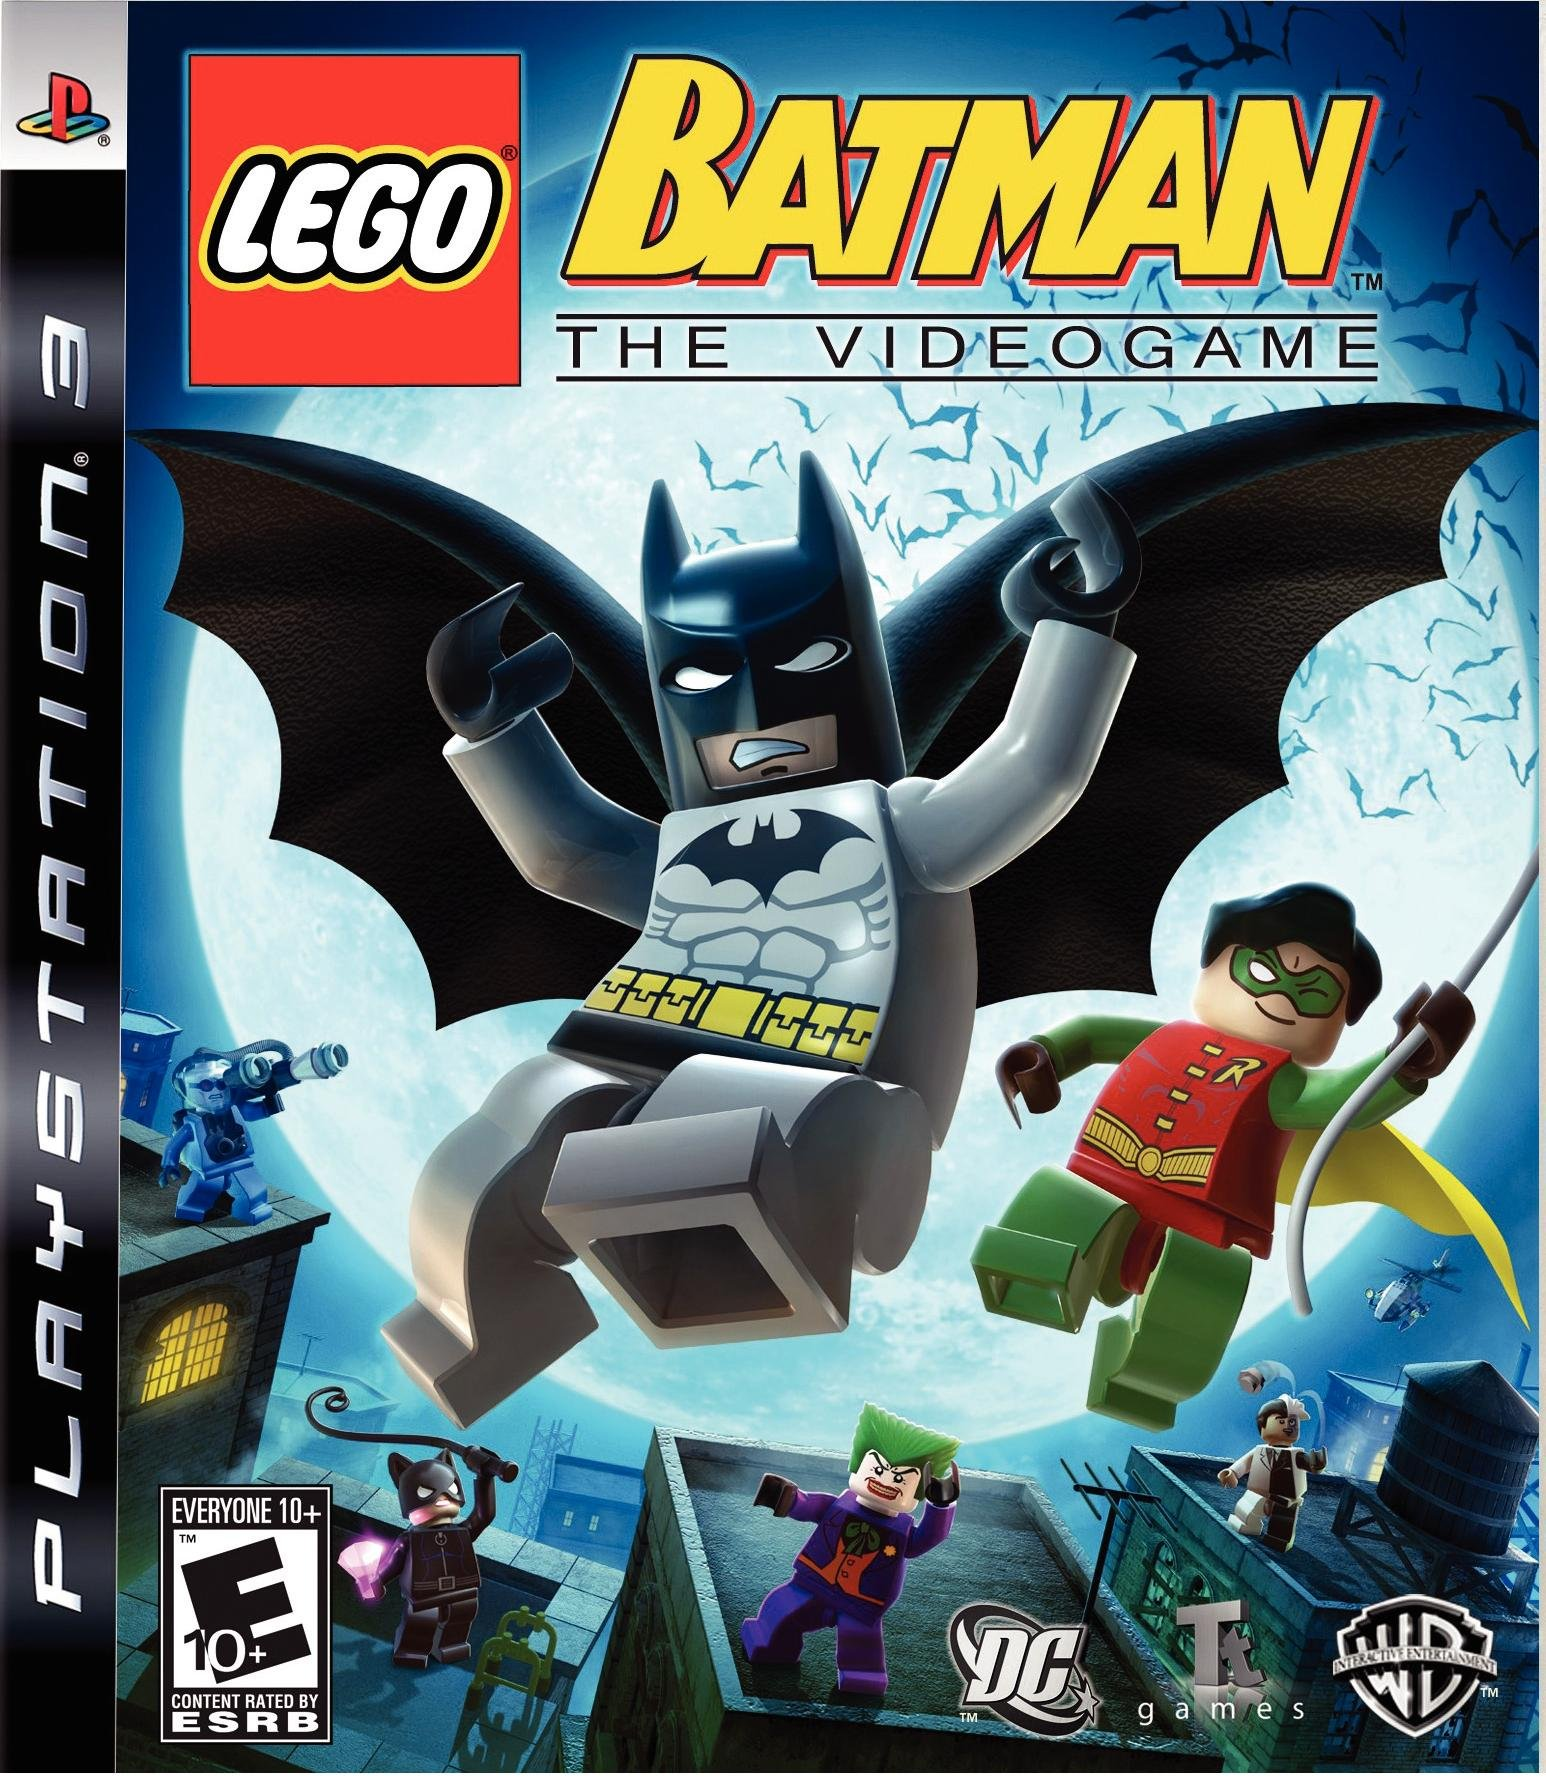 Lego Batman Release Date (Xbox 360, PS3, PC, Wii, PSP, DS)